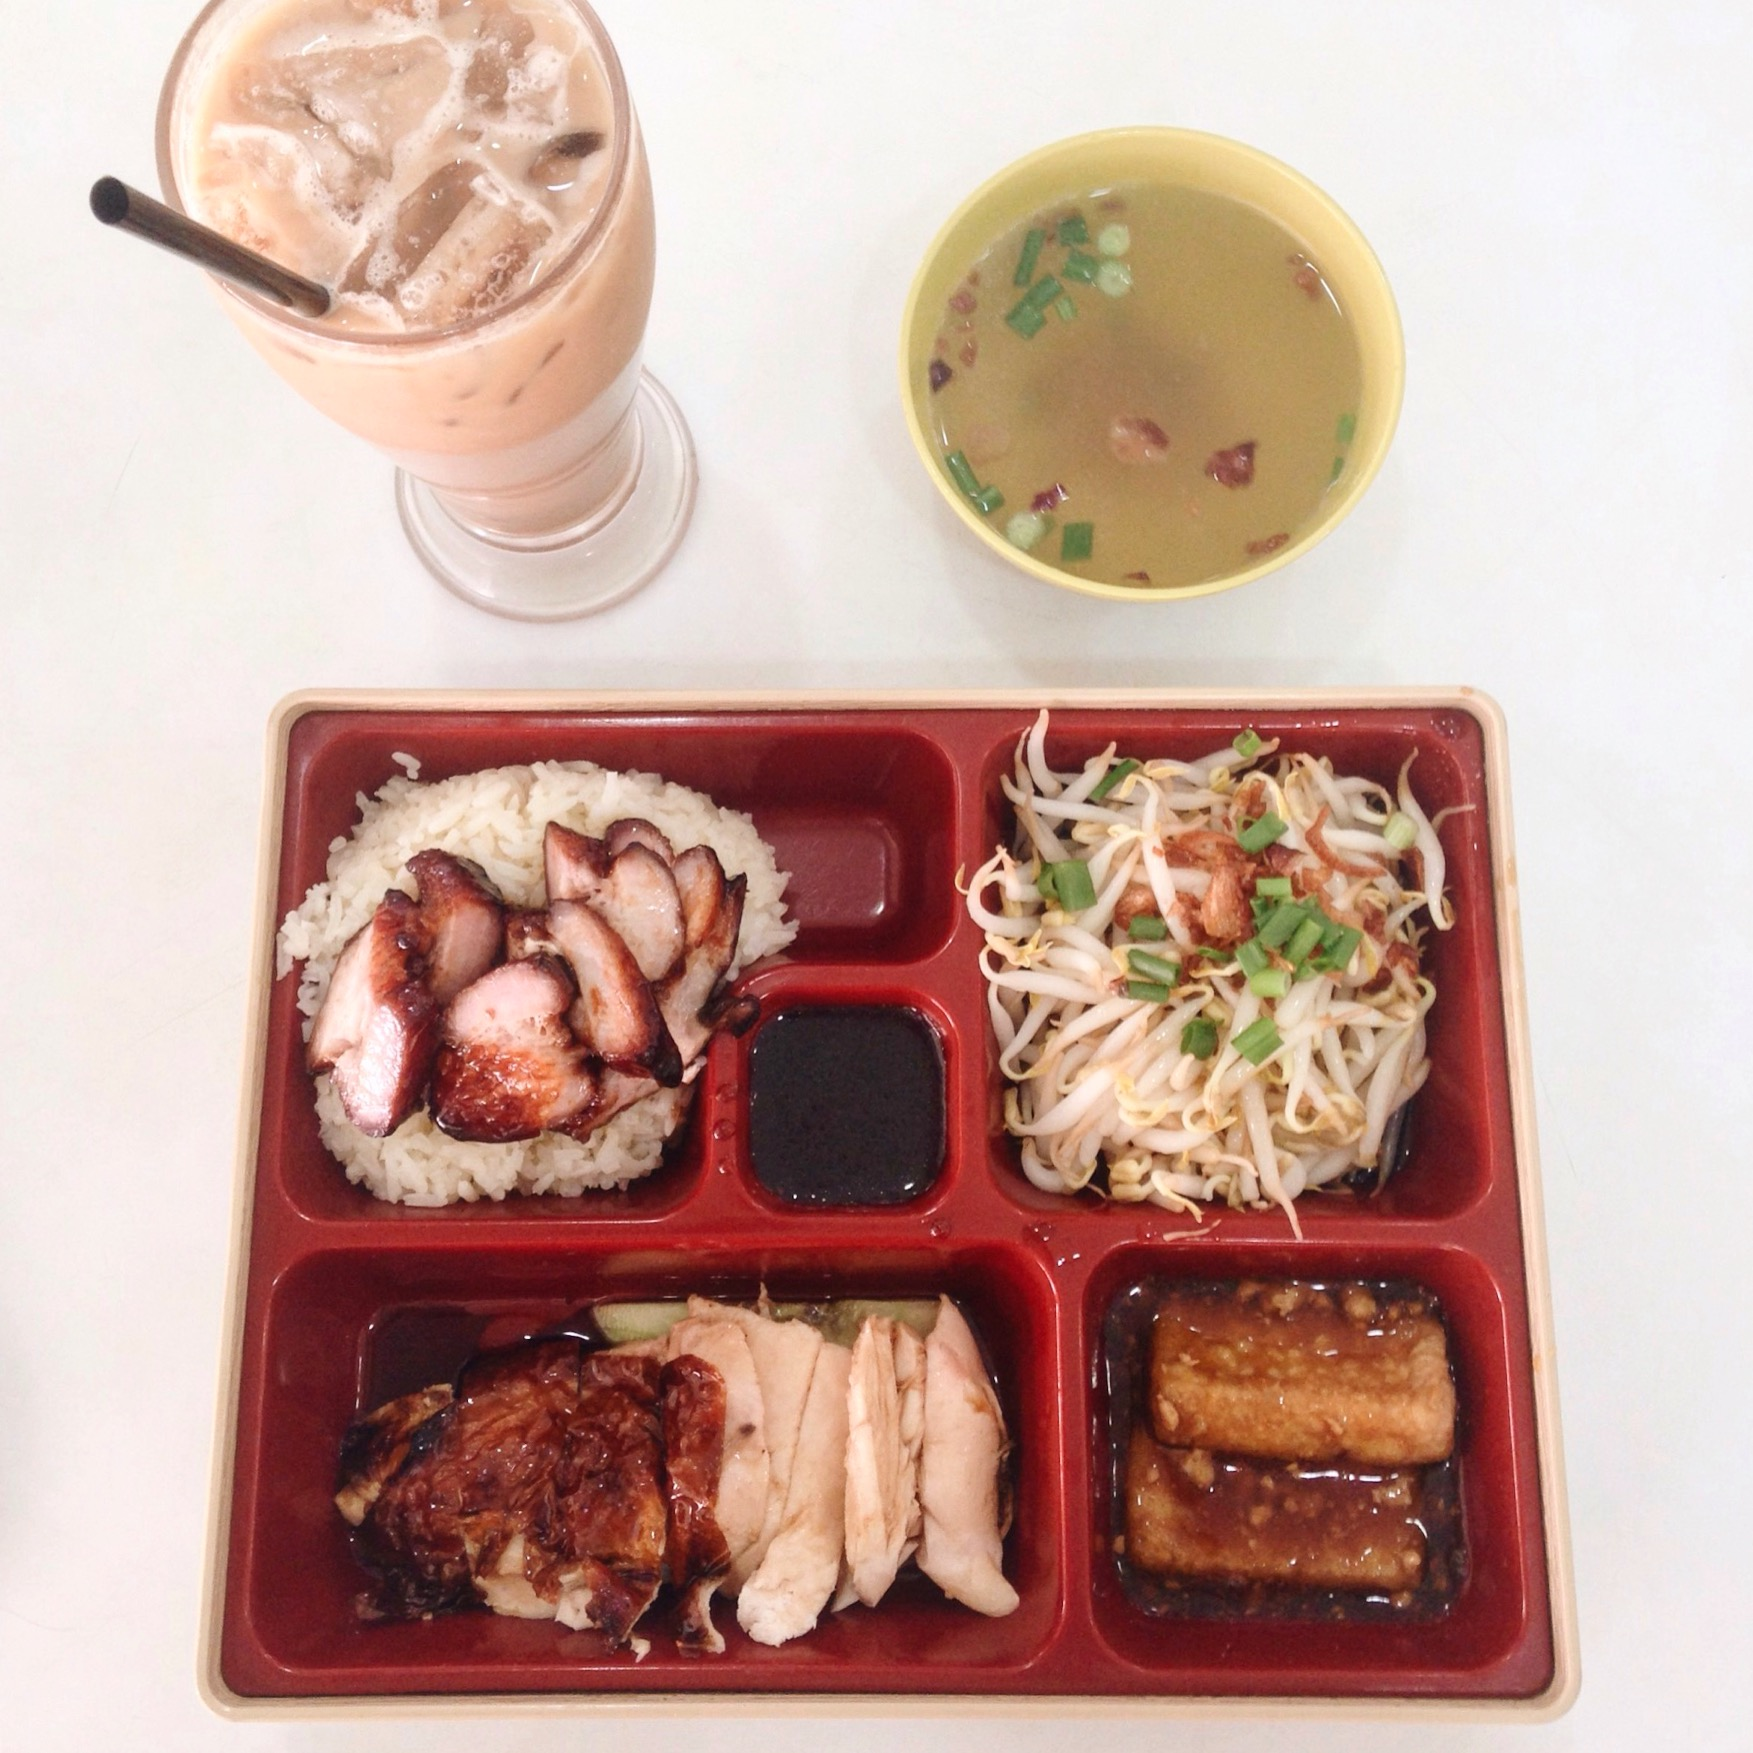 For Organic Chicken Rice Lunches